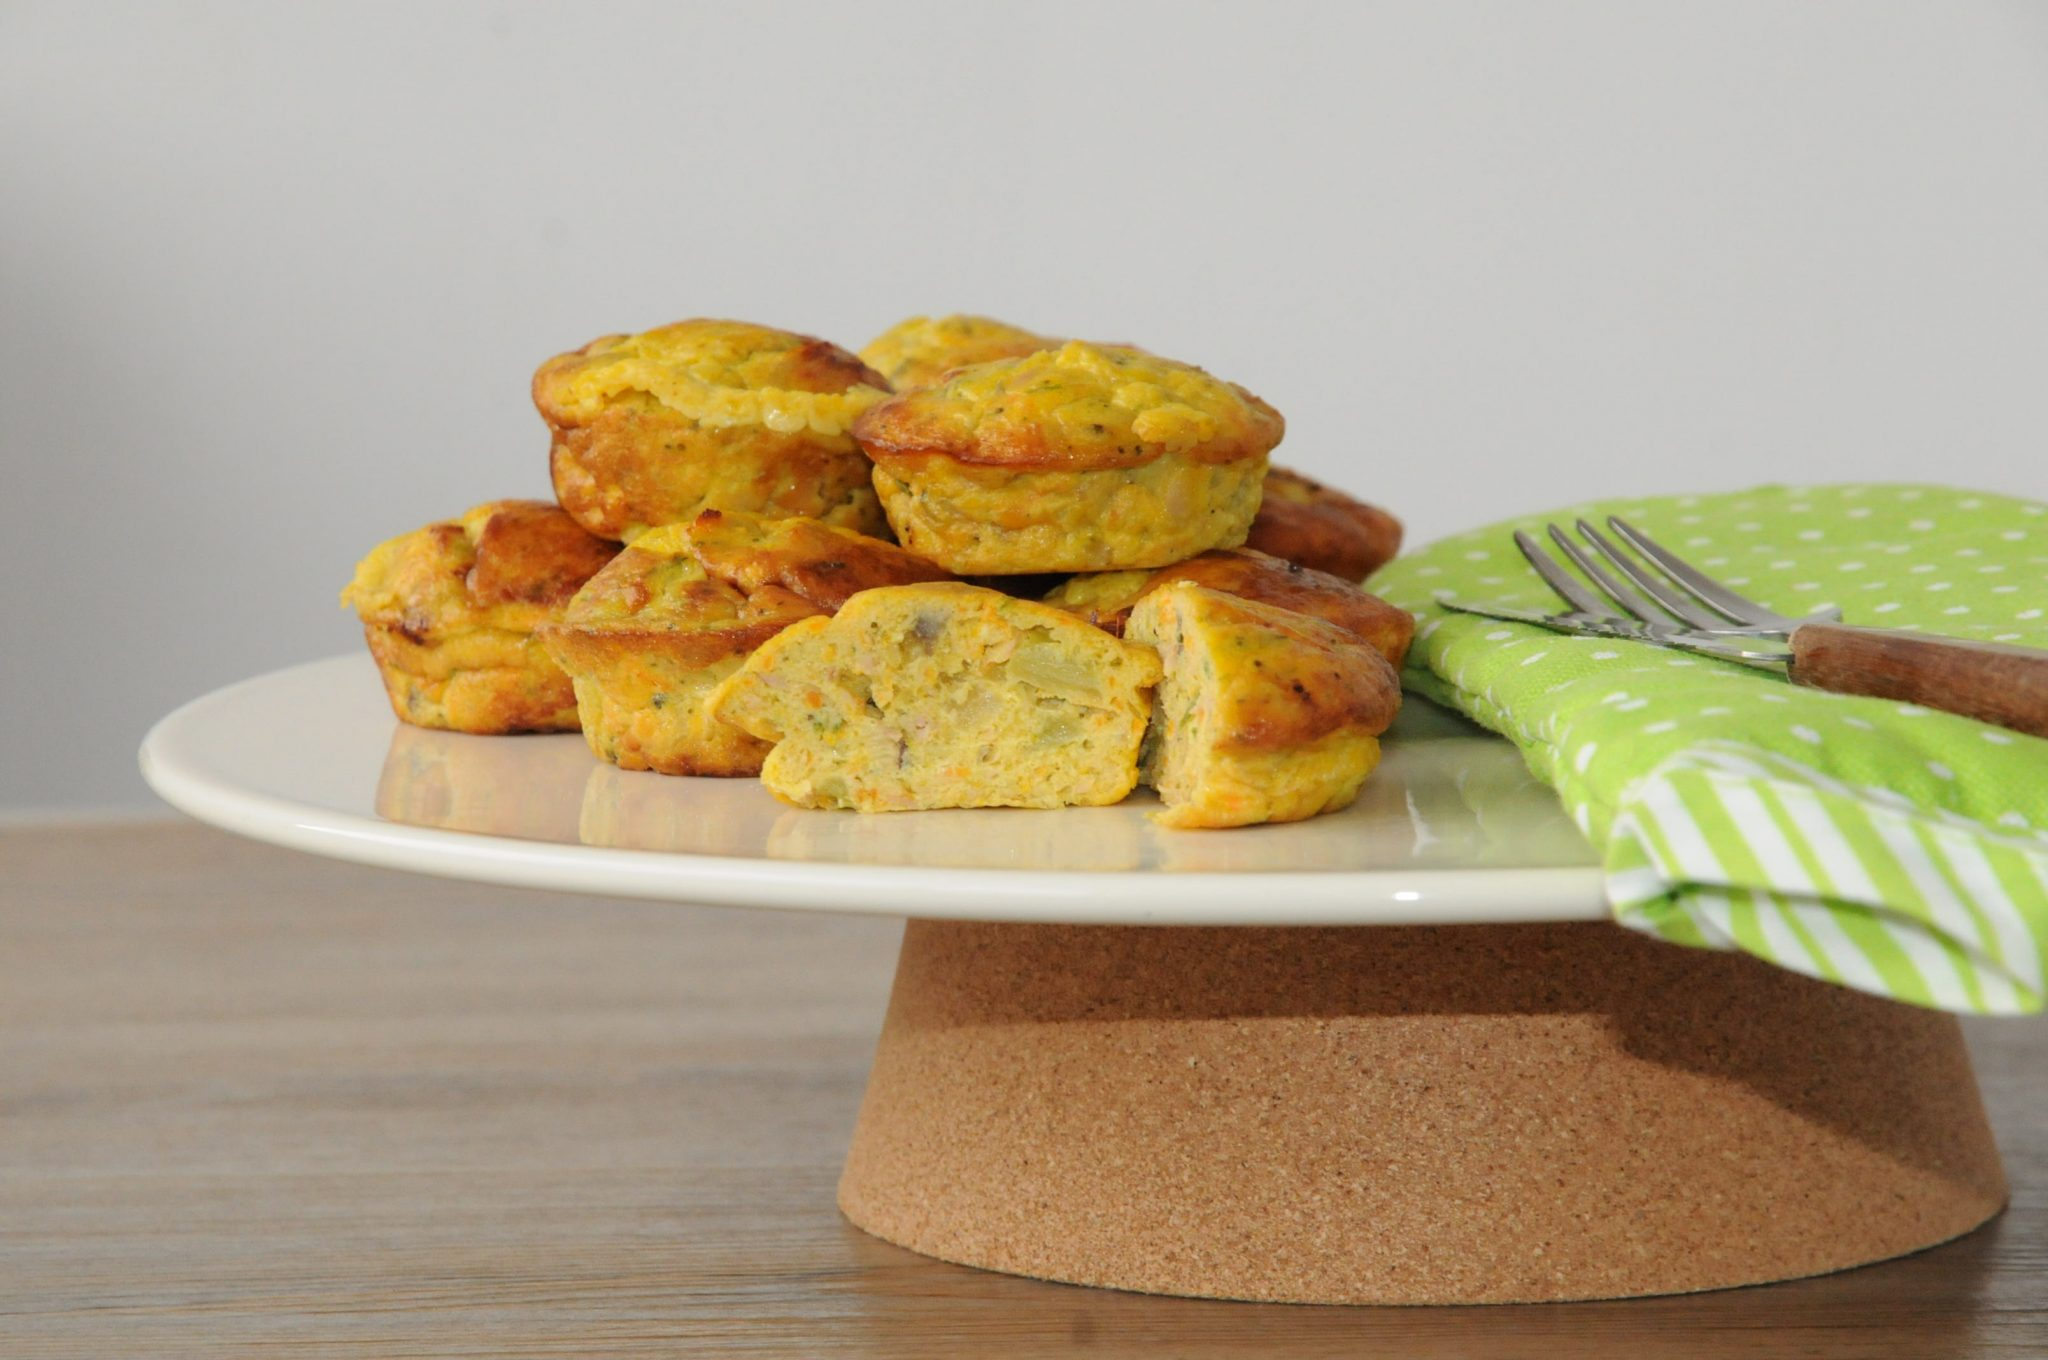 Salmon and vegetables yogurt muffins